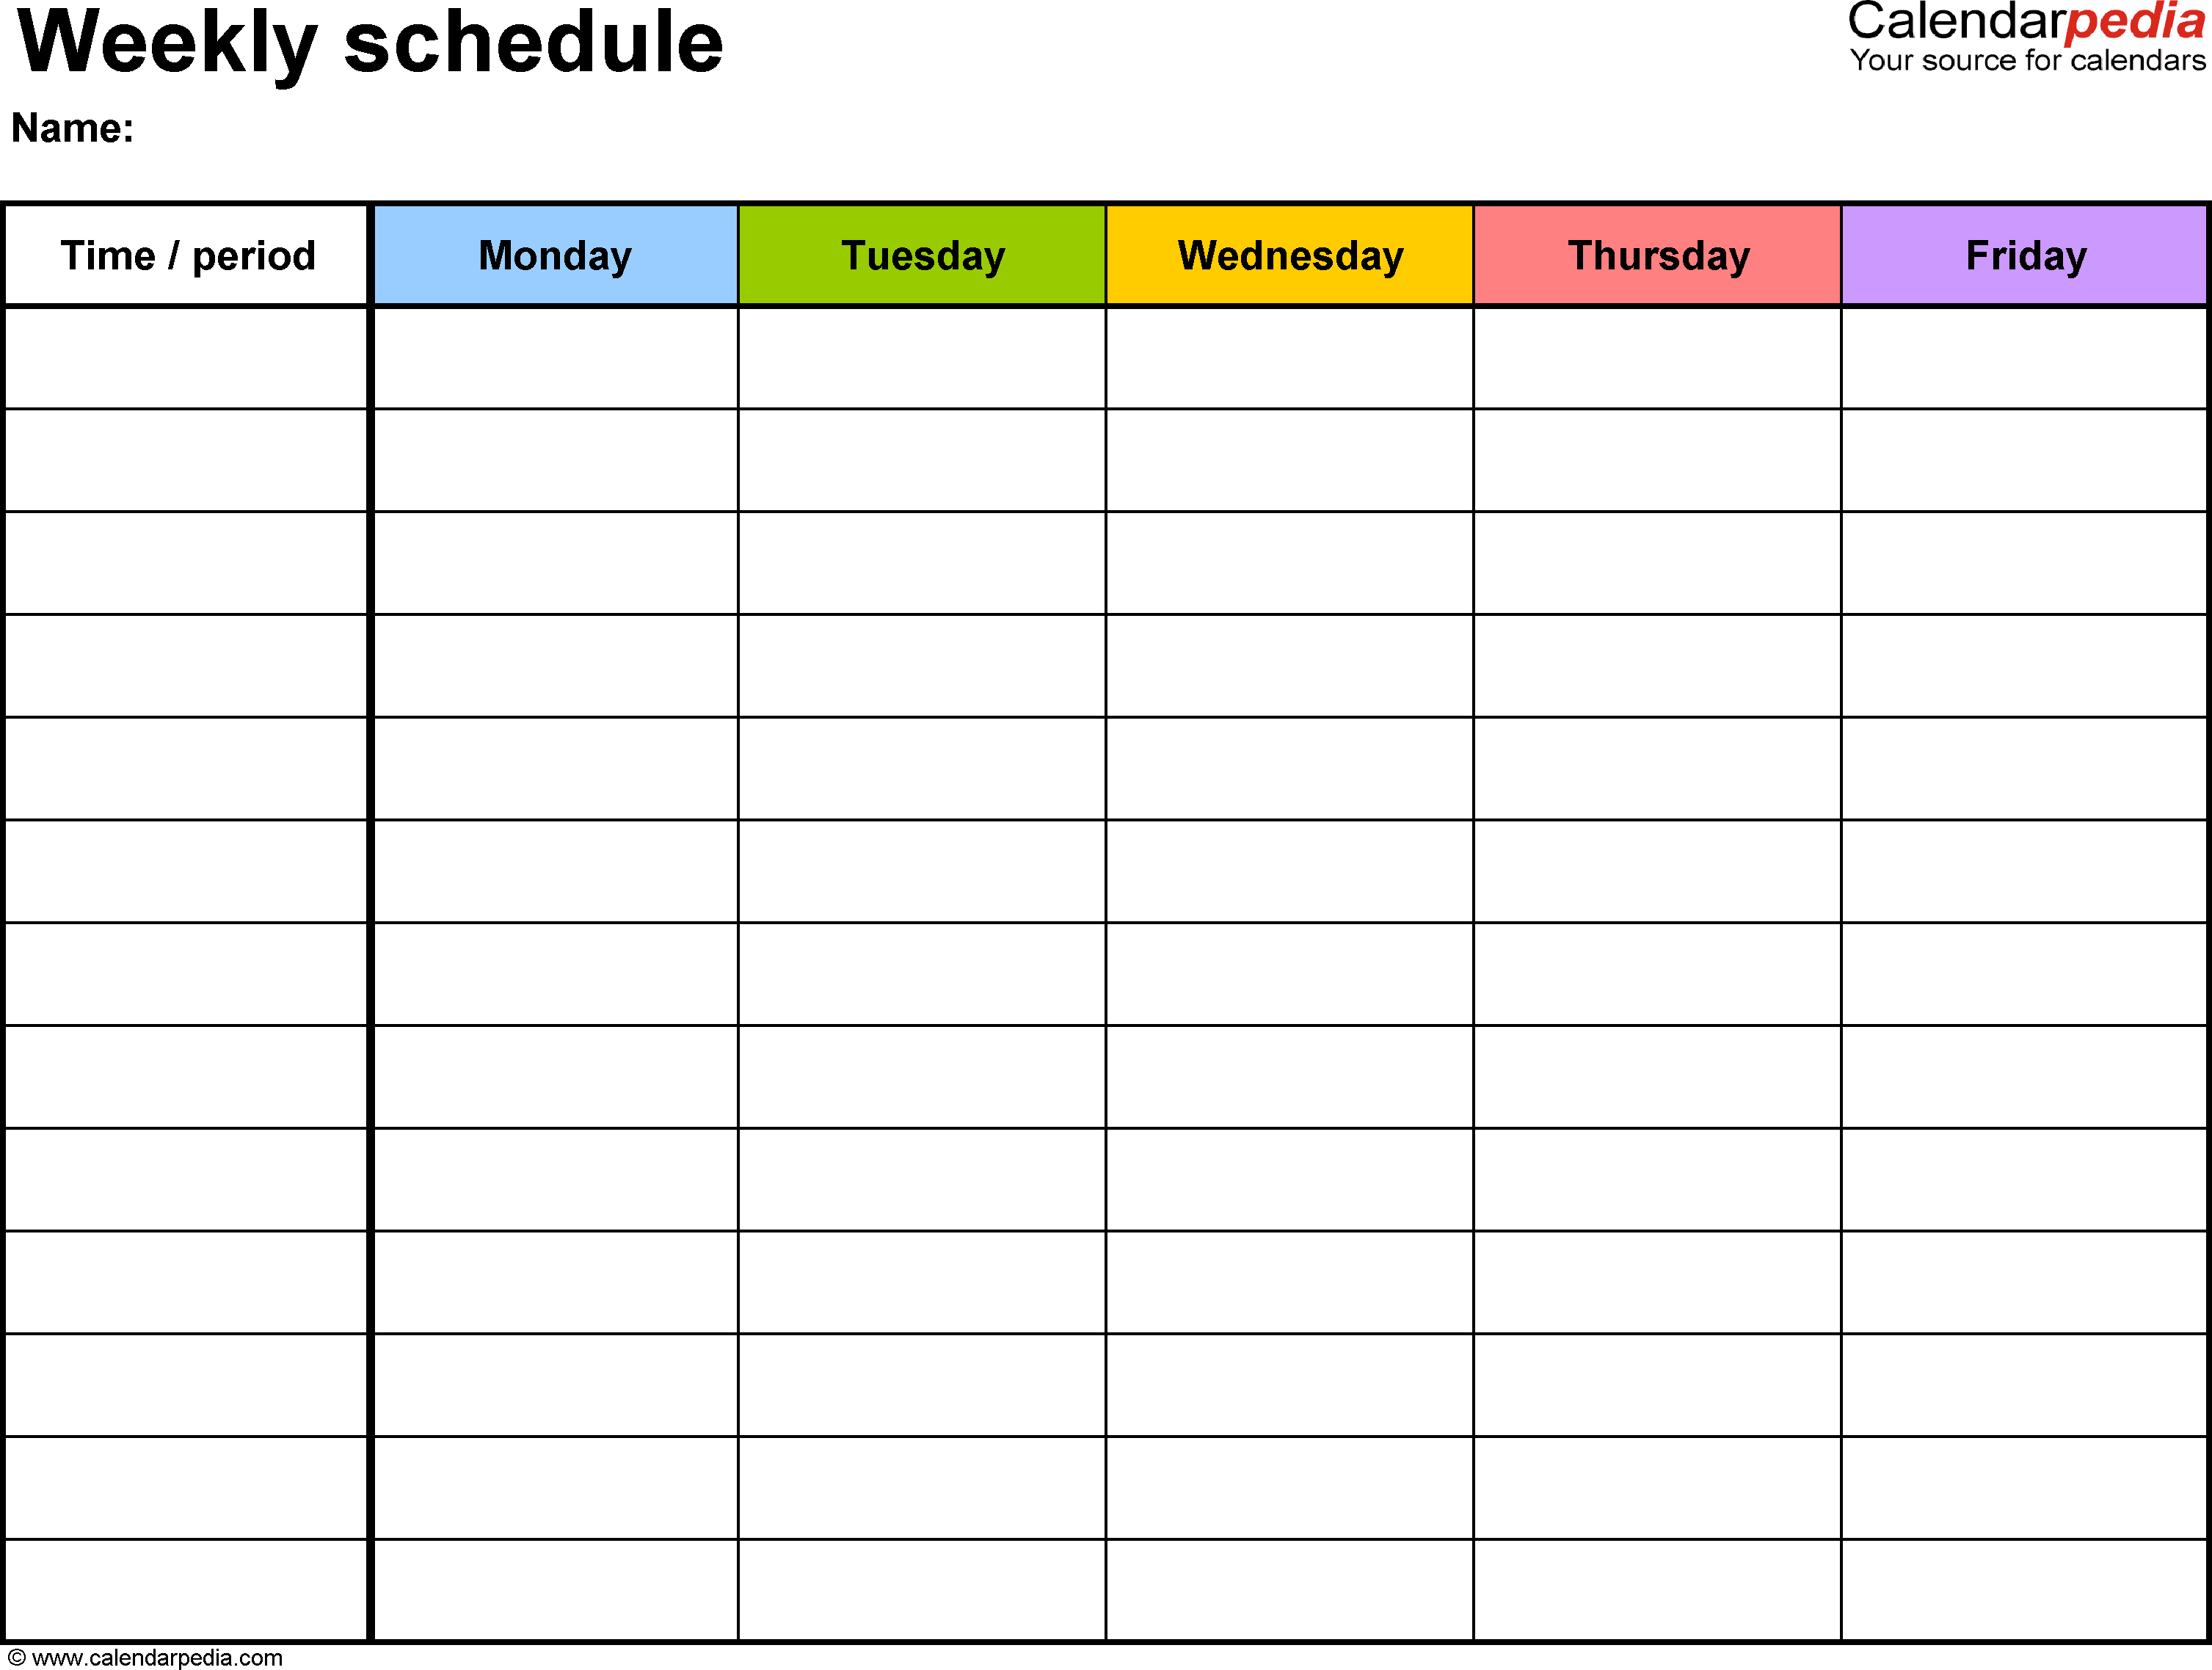 Free Weekly Schedule Templates For Word - 18 Templates within Week Schedule Template With Times